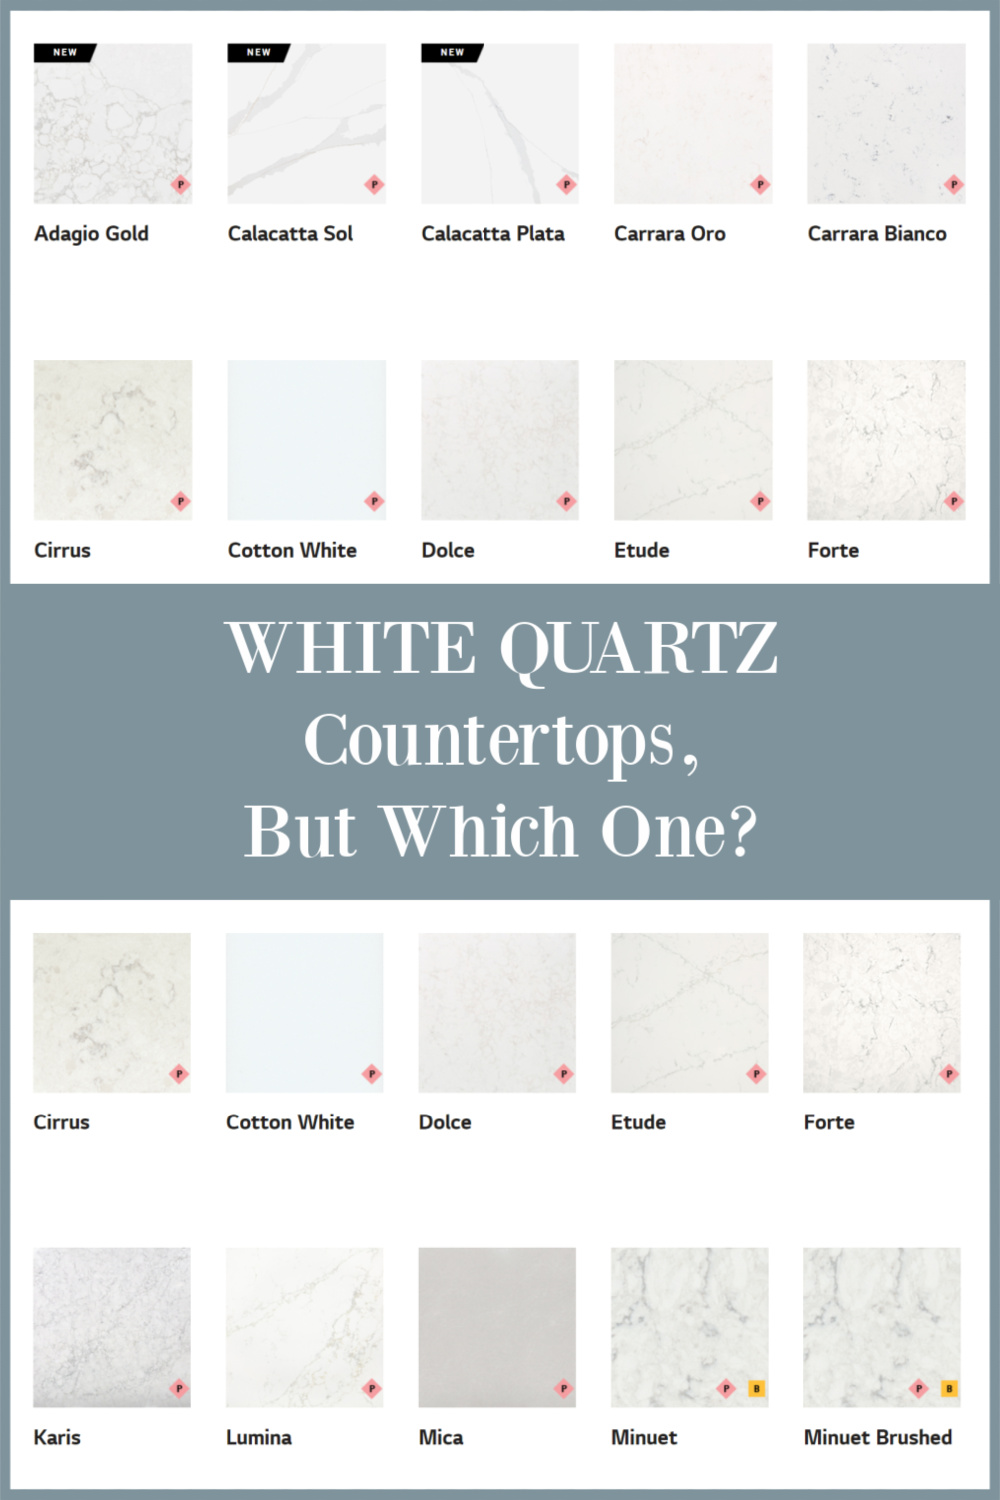 White quartz countertops, but which one - find the answers and inside scoop on Hello Lovely. #whitequartzcountertops #whitequartz #kitchencounters